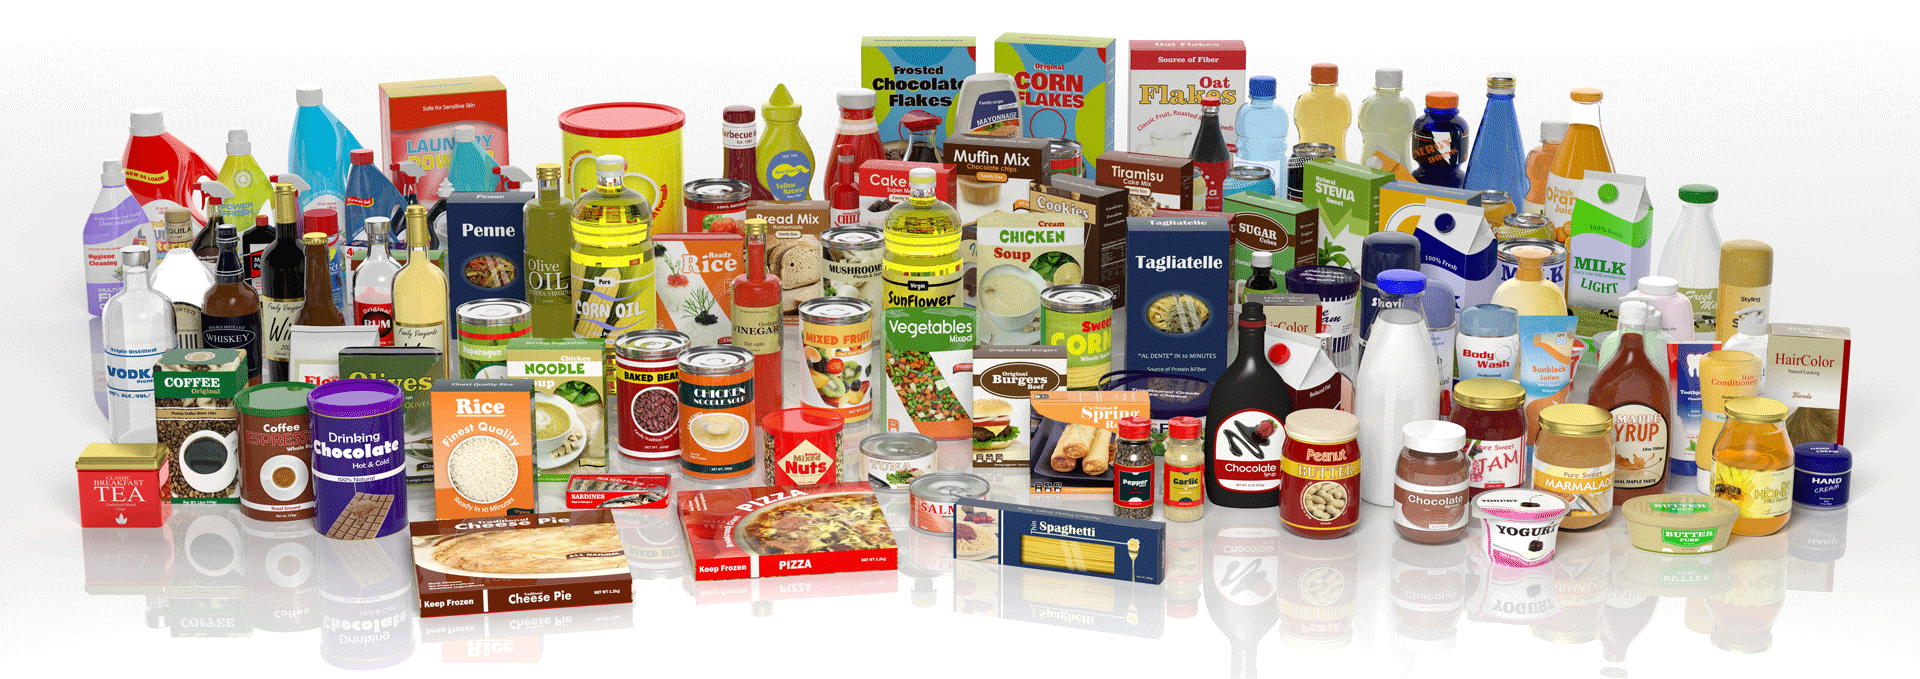 Printing Inks, Coating Products and Packaging Solutions